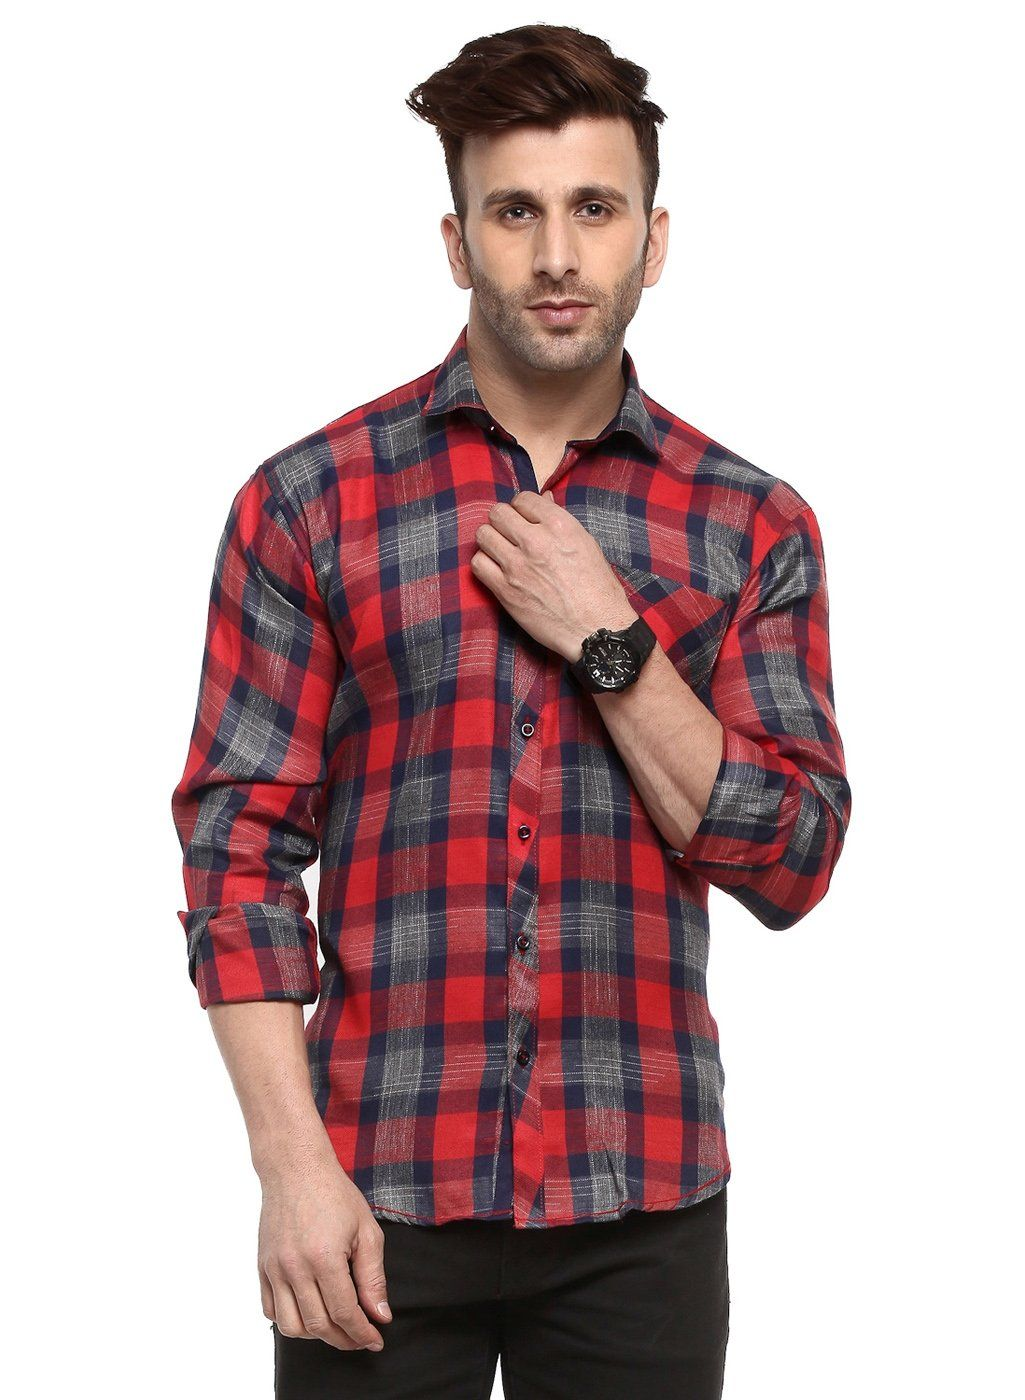 8b470c840 Buy Cheap Formal Shirts Online India - Nils Stucki Kieferorthopäde